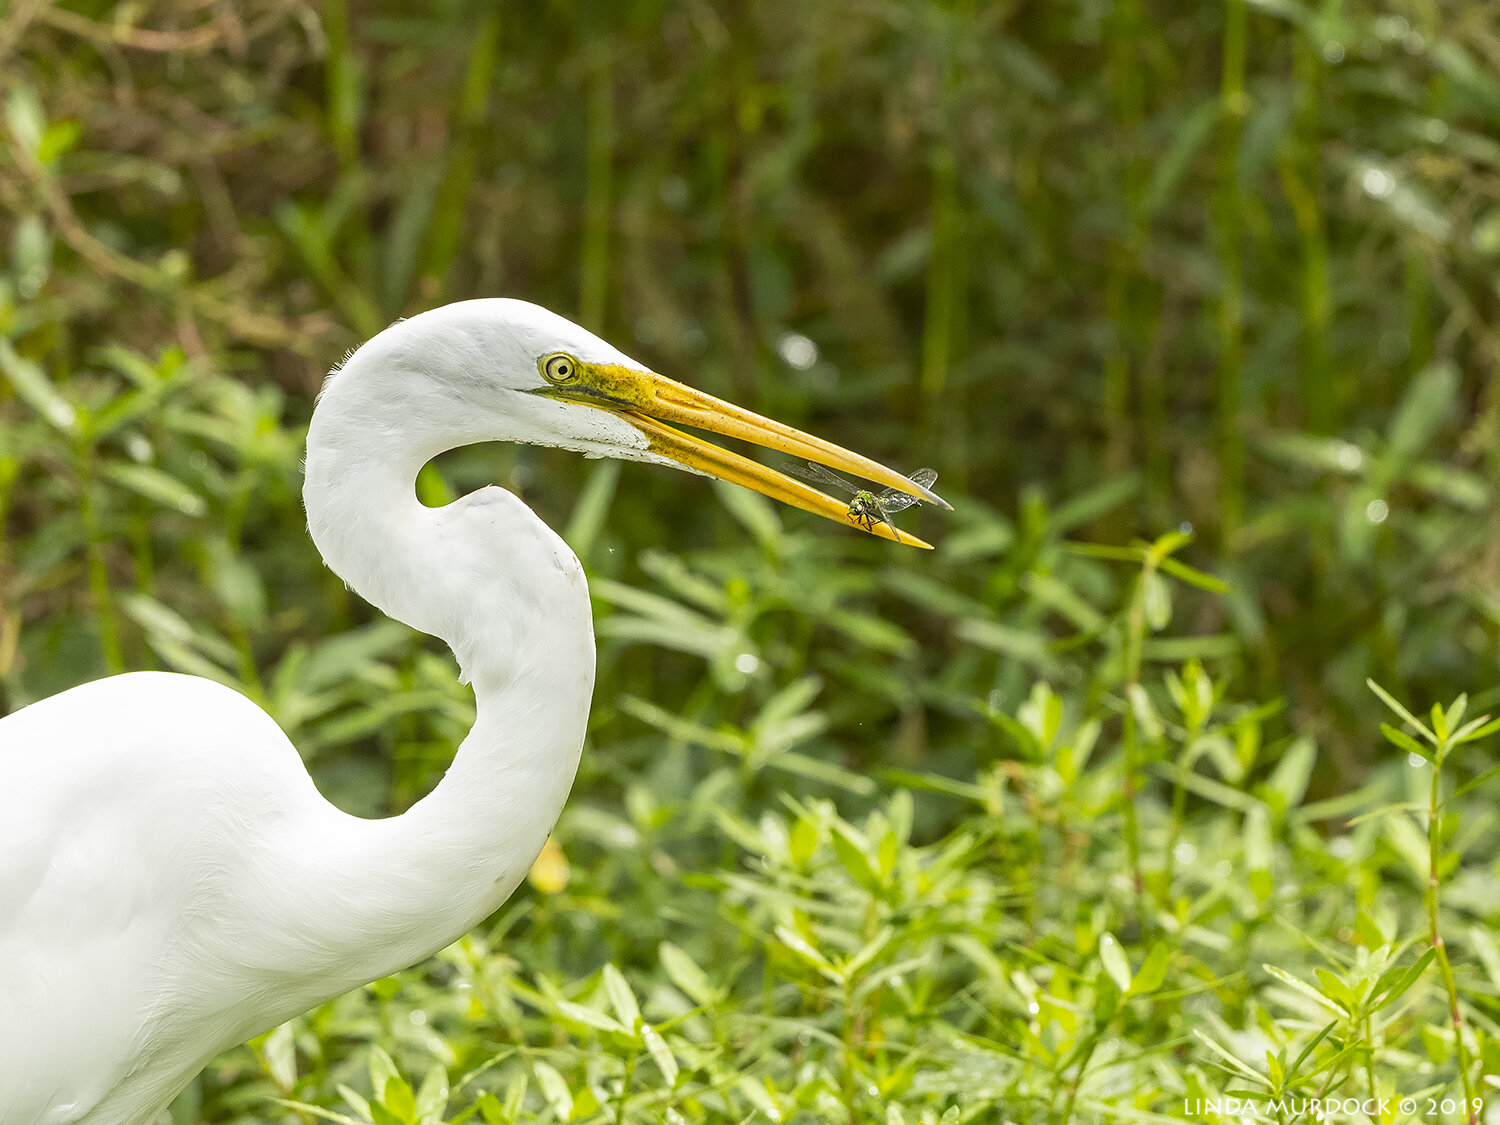 Great Egret with dragonfly  Nikon D850 with Nikkor 500 f/5.6 PF VR ~ 1/2000 sec f/6.3 ISO 1250; hand-held